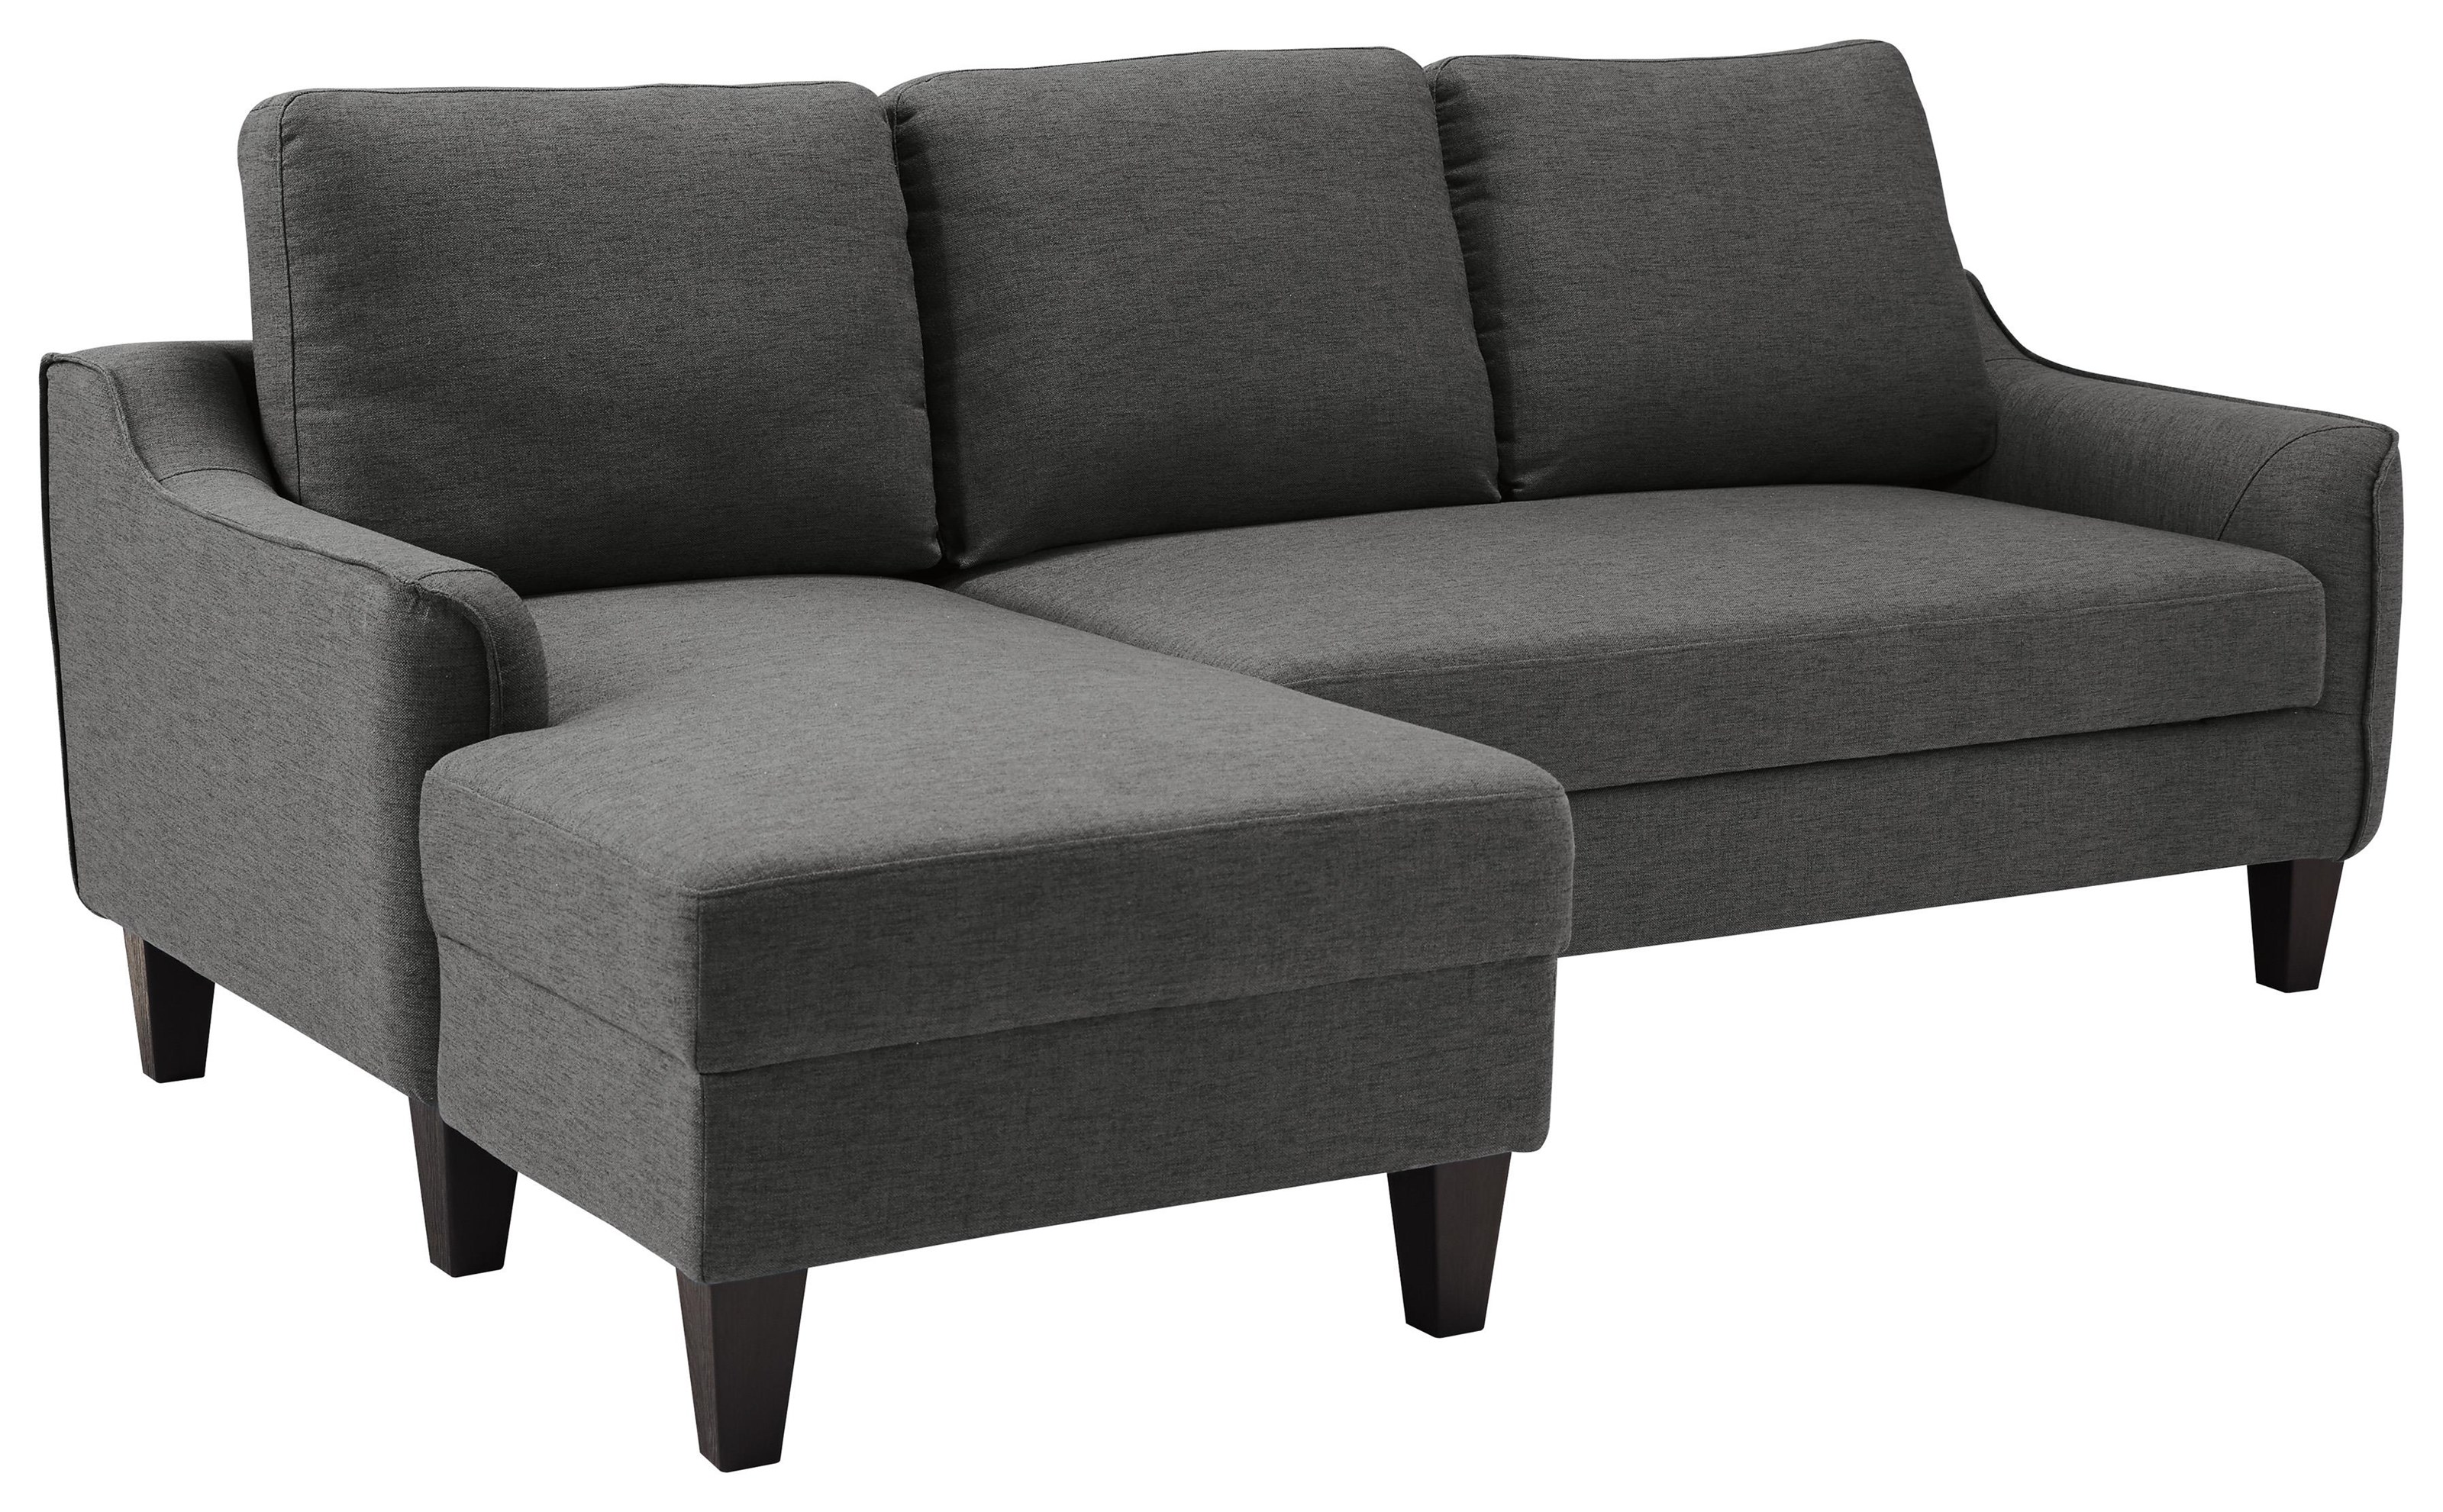 Jarreau Full Sofa Sleeper by Signature Design by Ashley at Red Knot